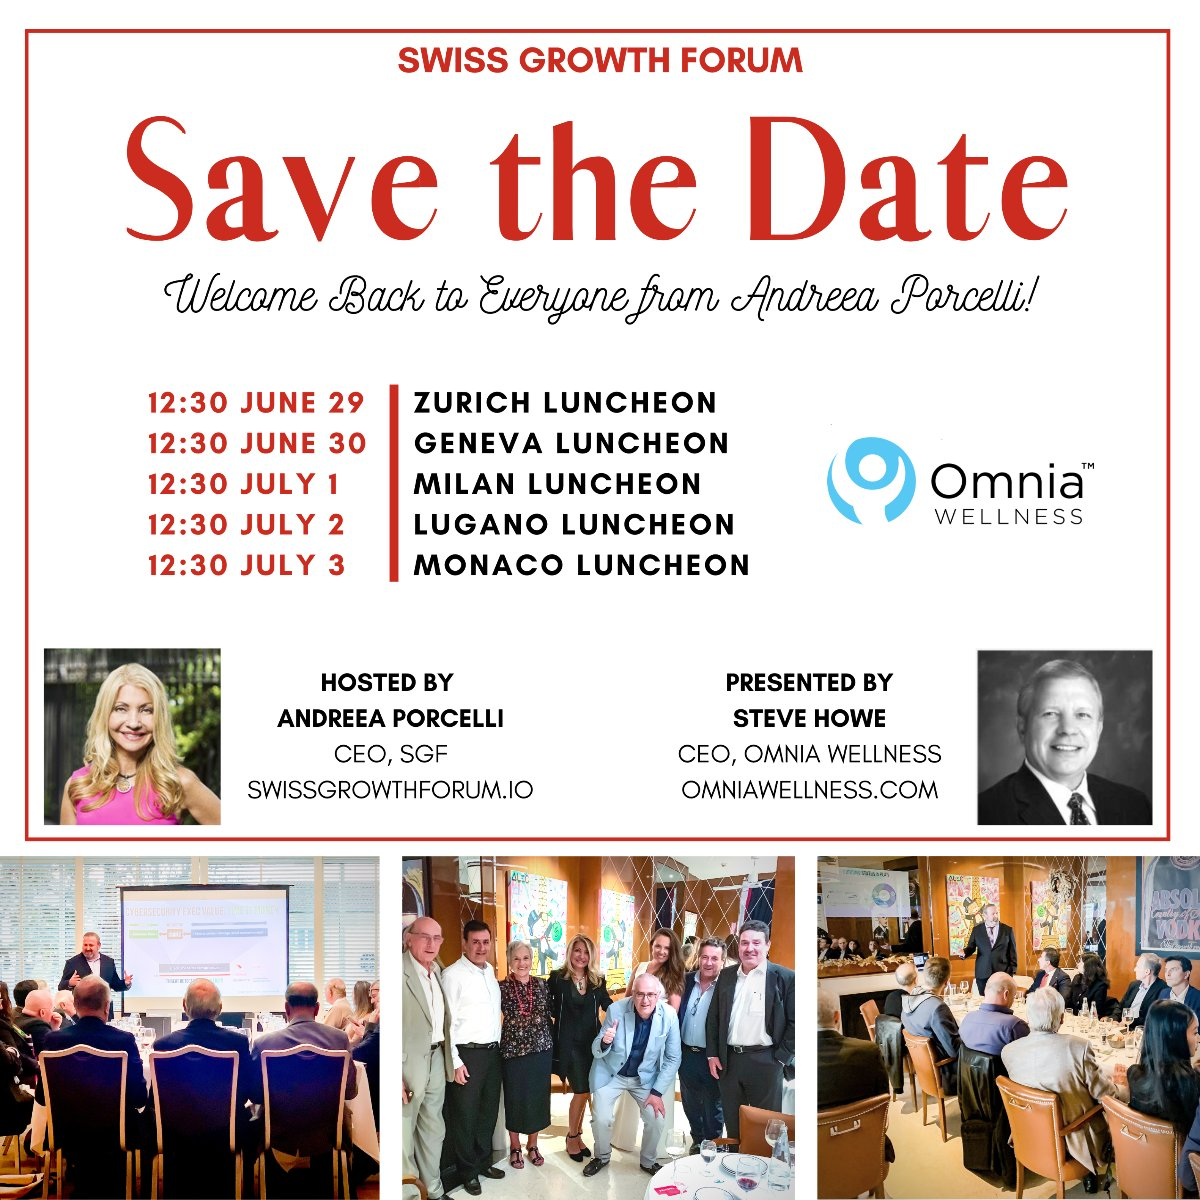 Andreea Porcelli Welcomes you Back to the SGF Roadshow for Omnia Wellness June 29th through July 2nd!  https://t.co/dZ03MaSlXD  #NewYork #Covid_19 #QuarantineLife #business #lockdown #updates #cybersecurity #investing #stocks  #coronavirus #nasdaq #meganfox #Banff2020 https://t.co/Vgg9dSeEL5